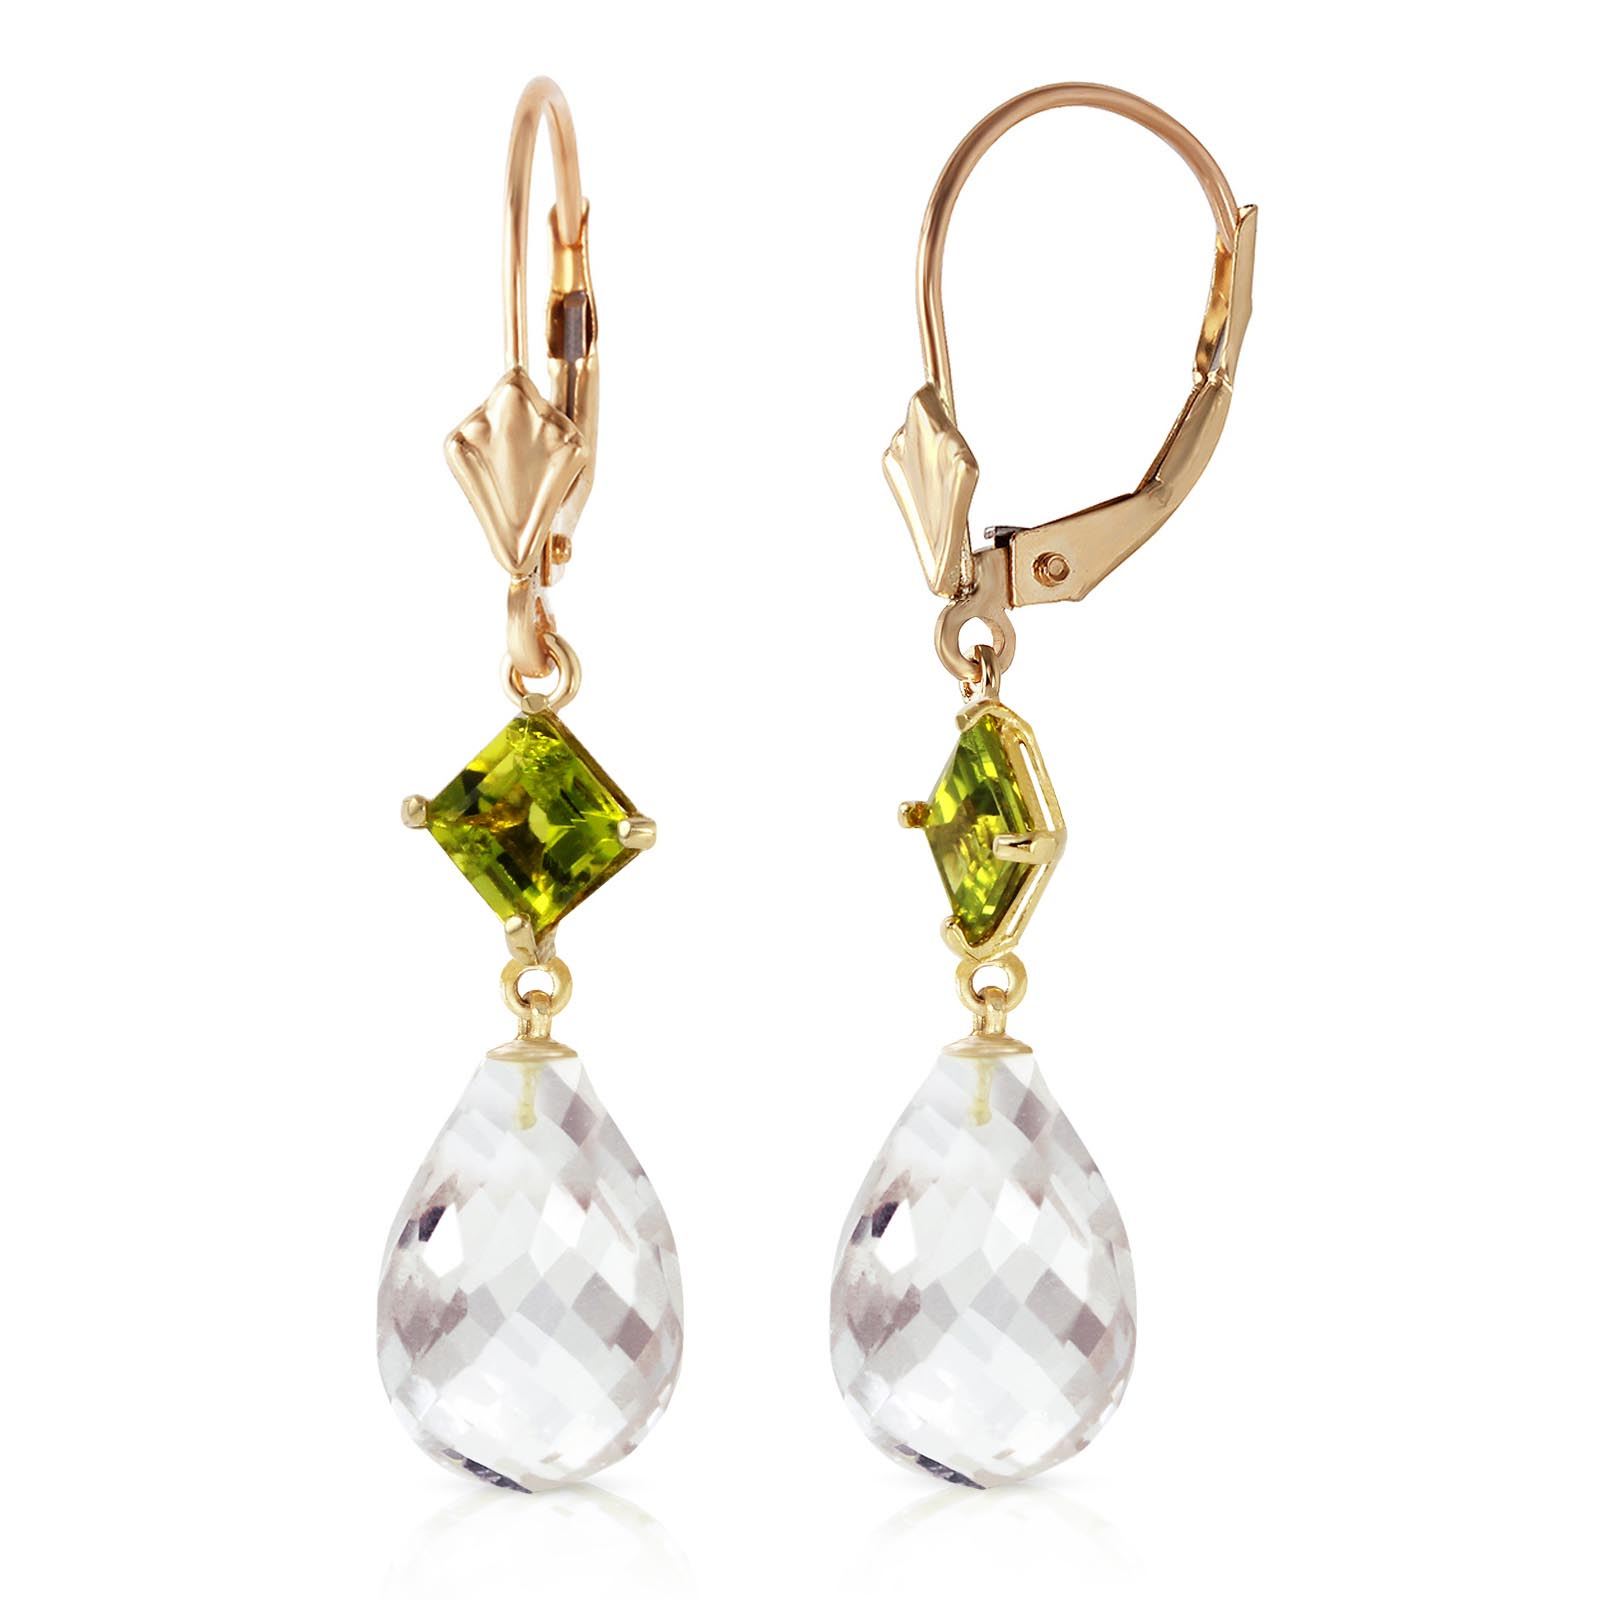 White Topaz & Peridot Drop Earrings in 9ct Gold